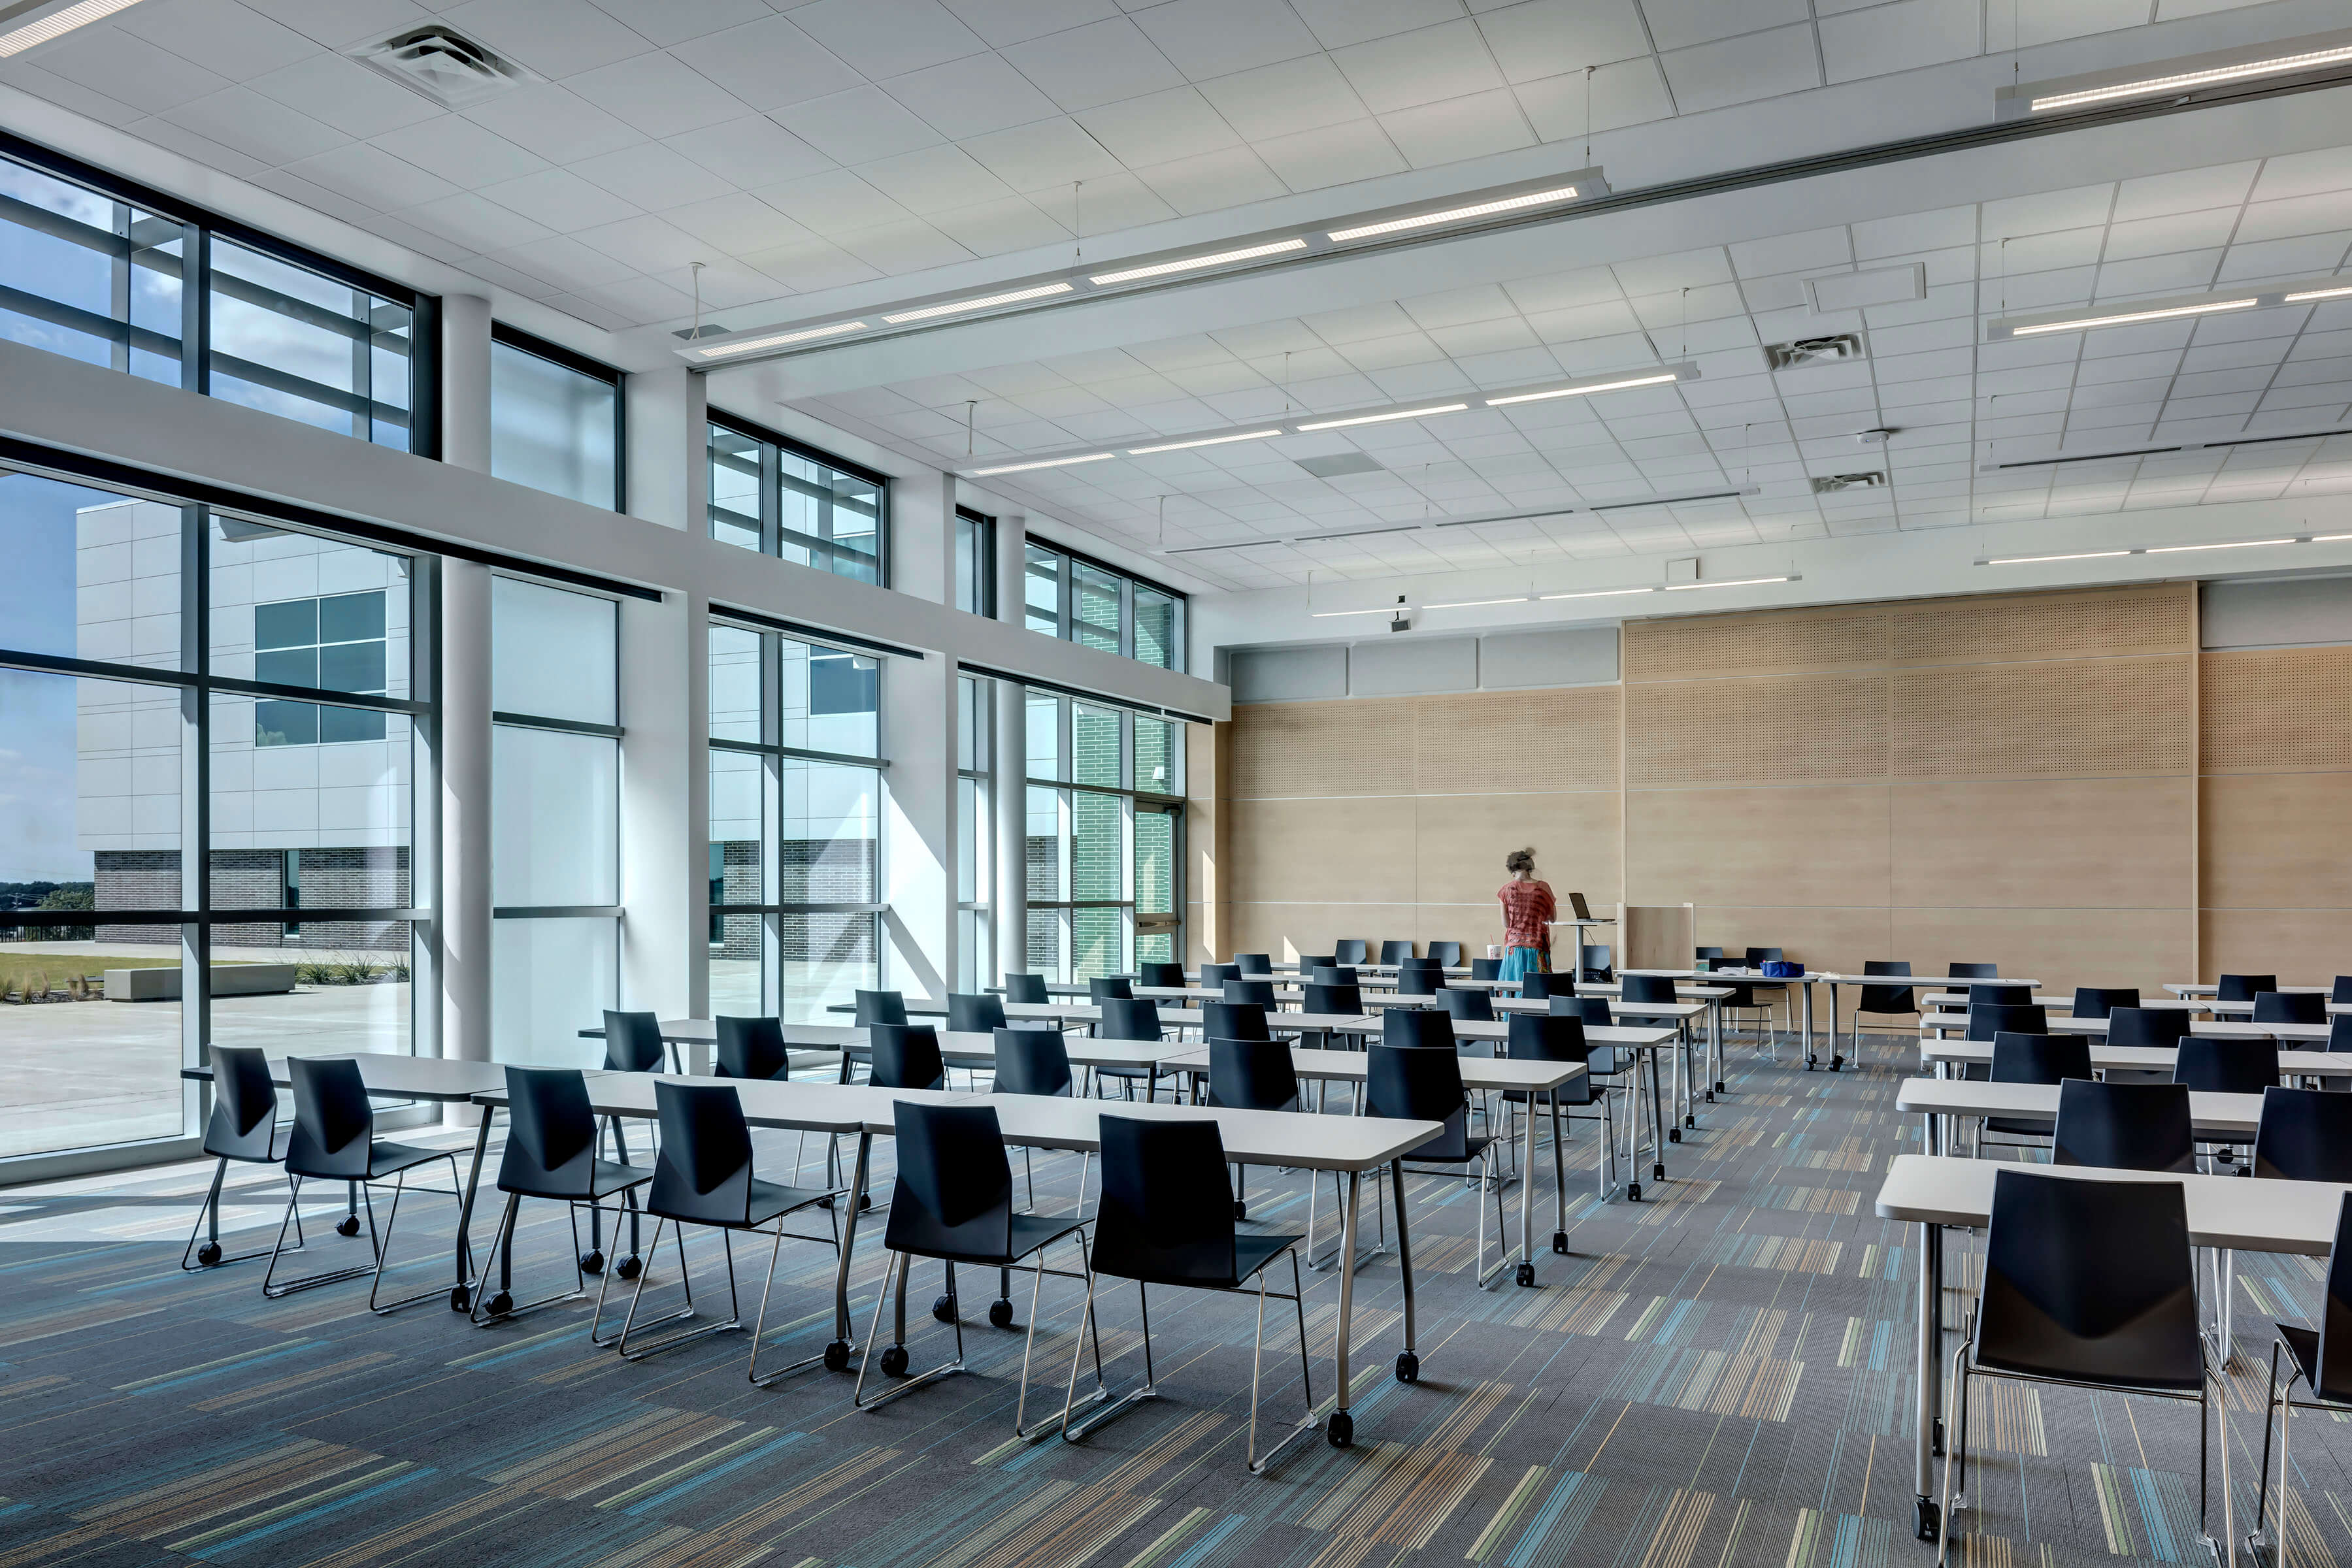 Fully Equipped Laboratories Allow Students Rich Exposure To Career Options In Preparation For